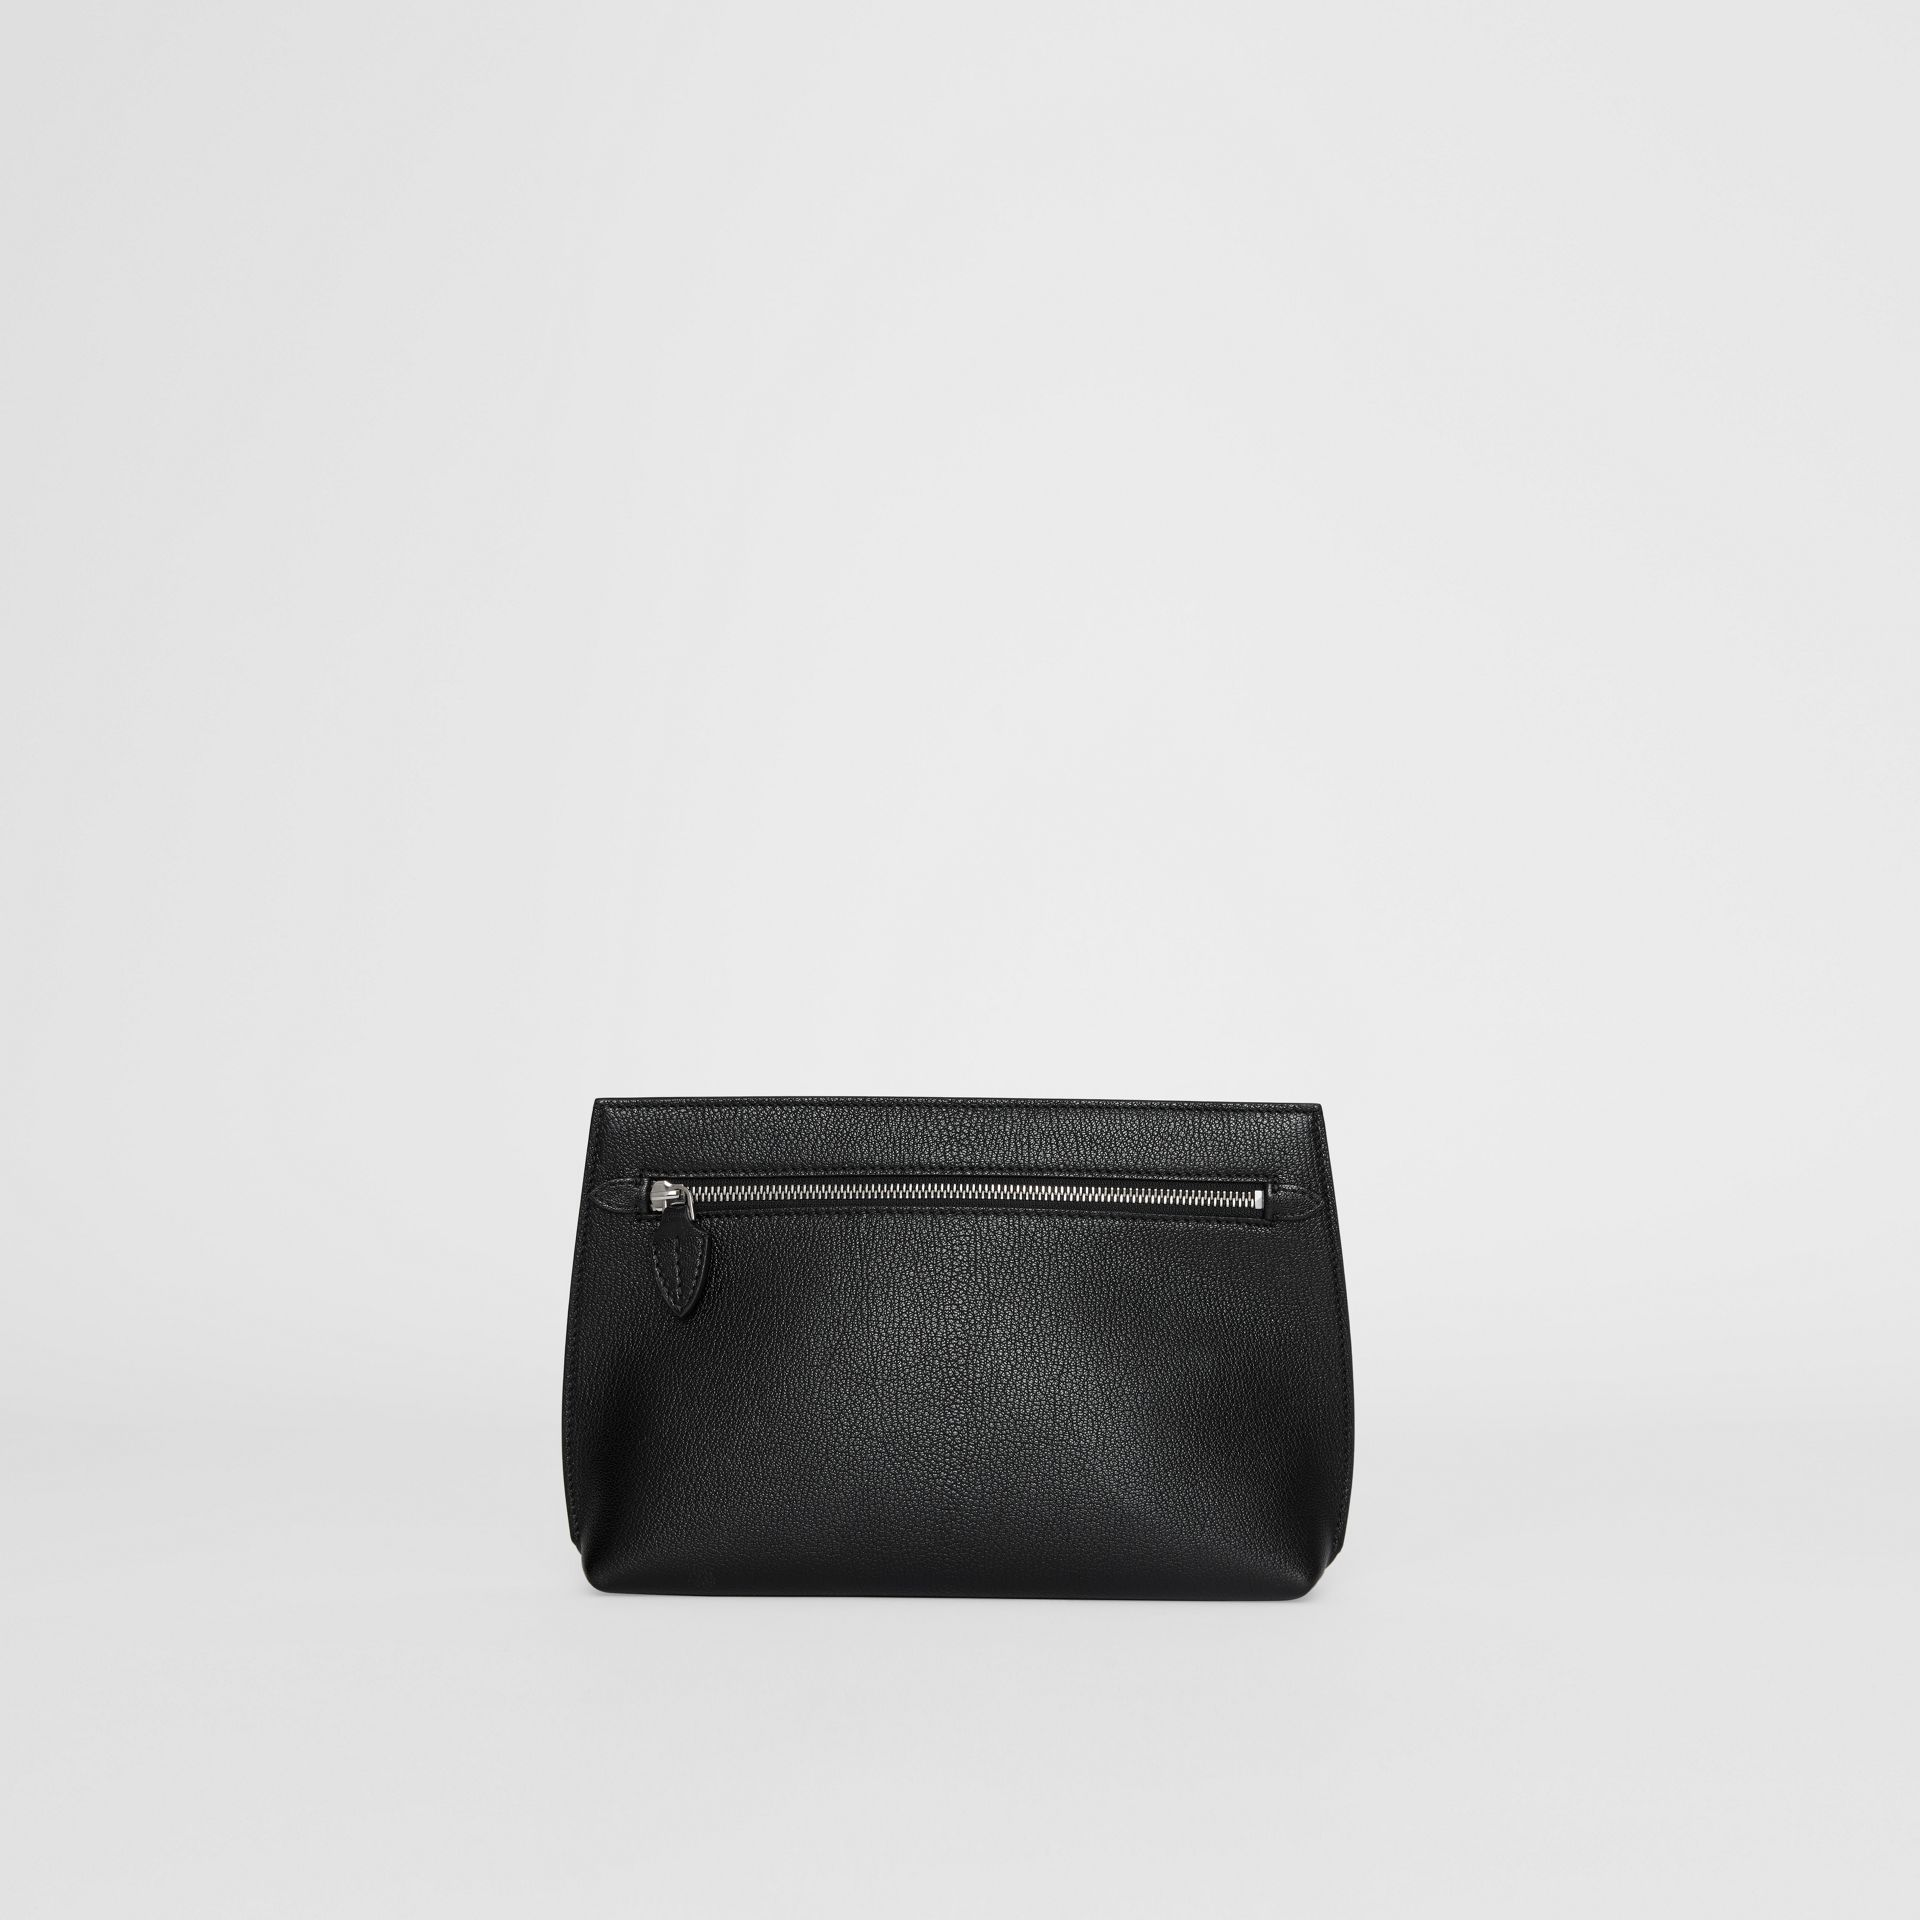 Grainy Leather Wristlet Clutch in Black - Women | Burberry Canada - gallery image 7